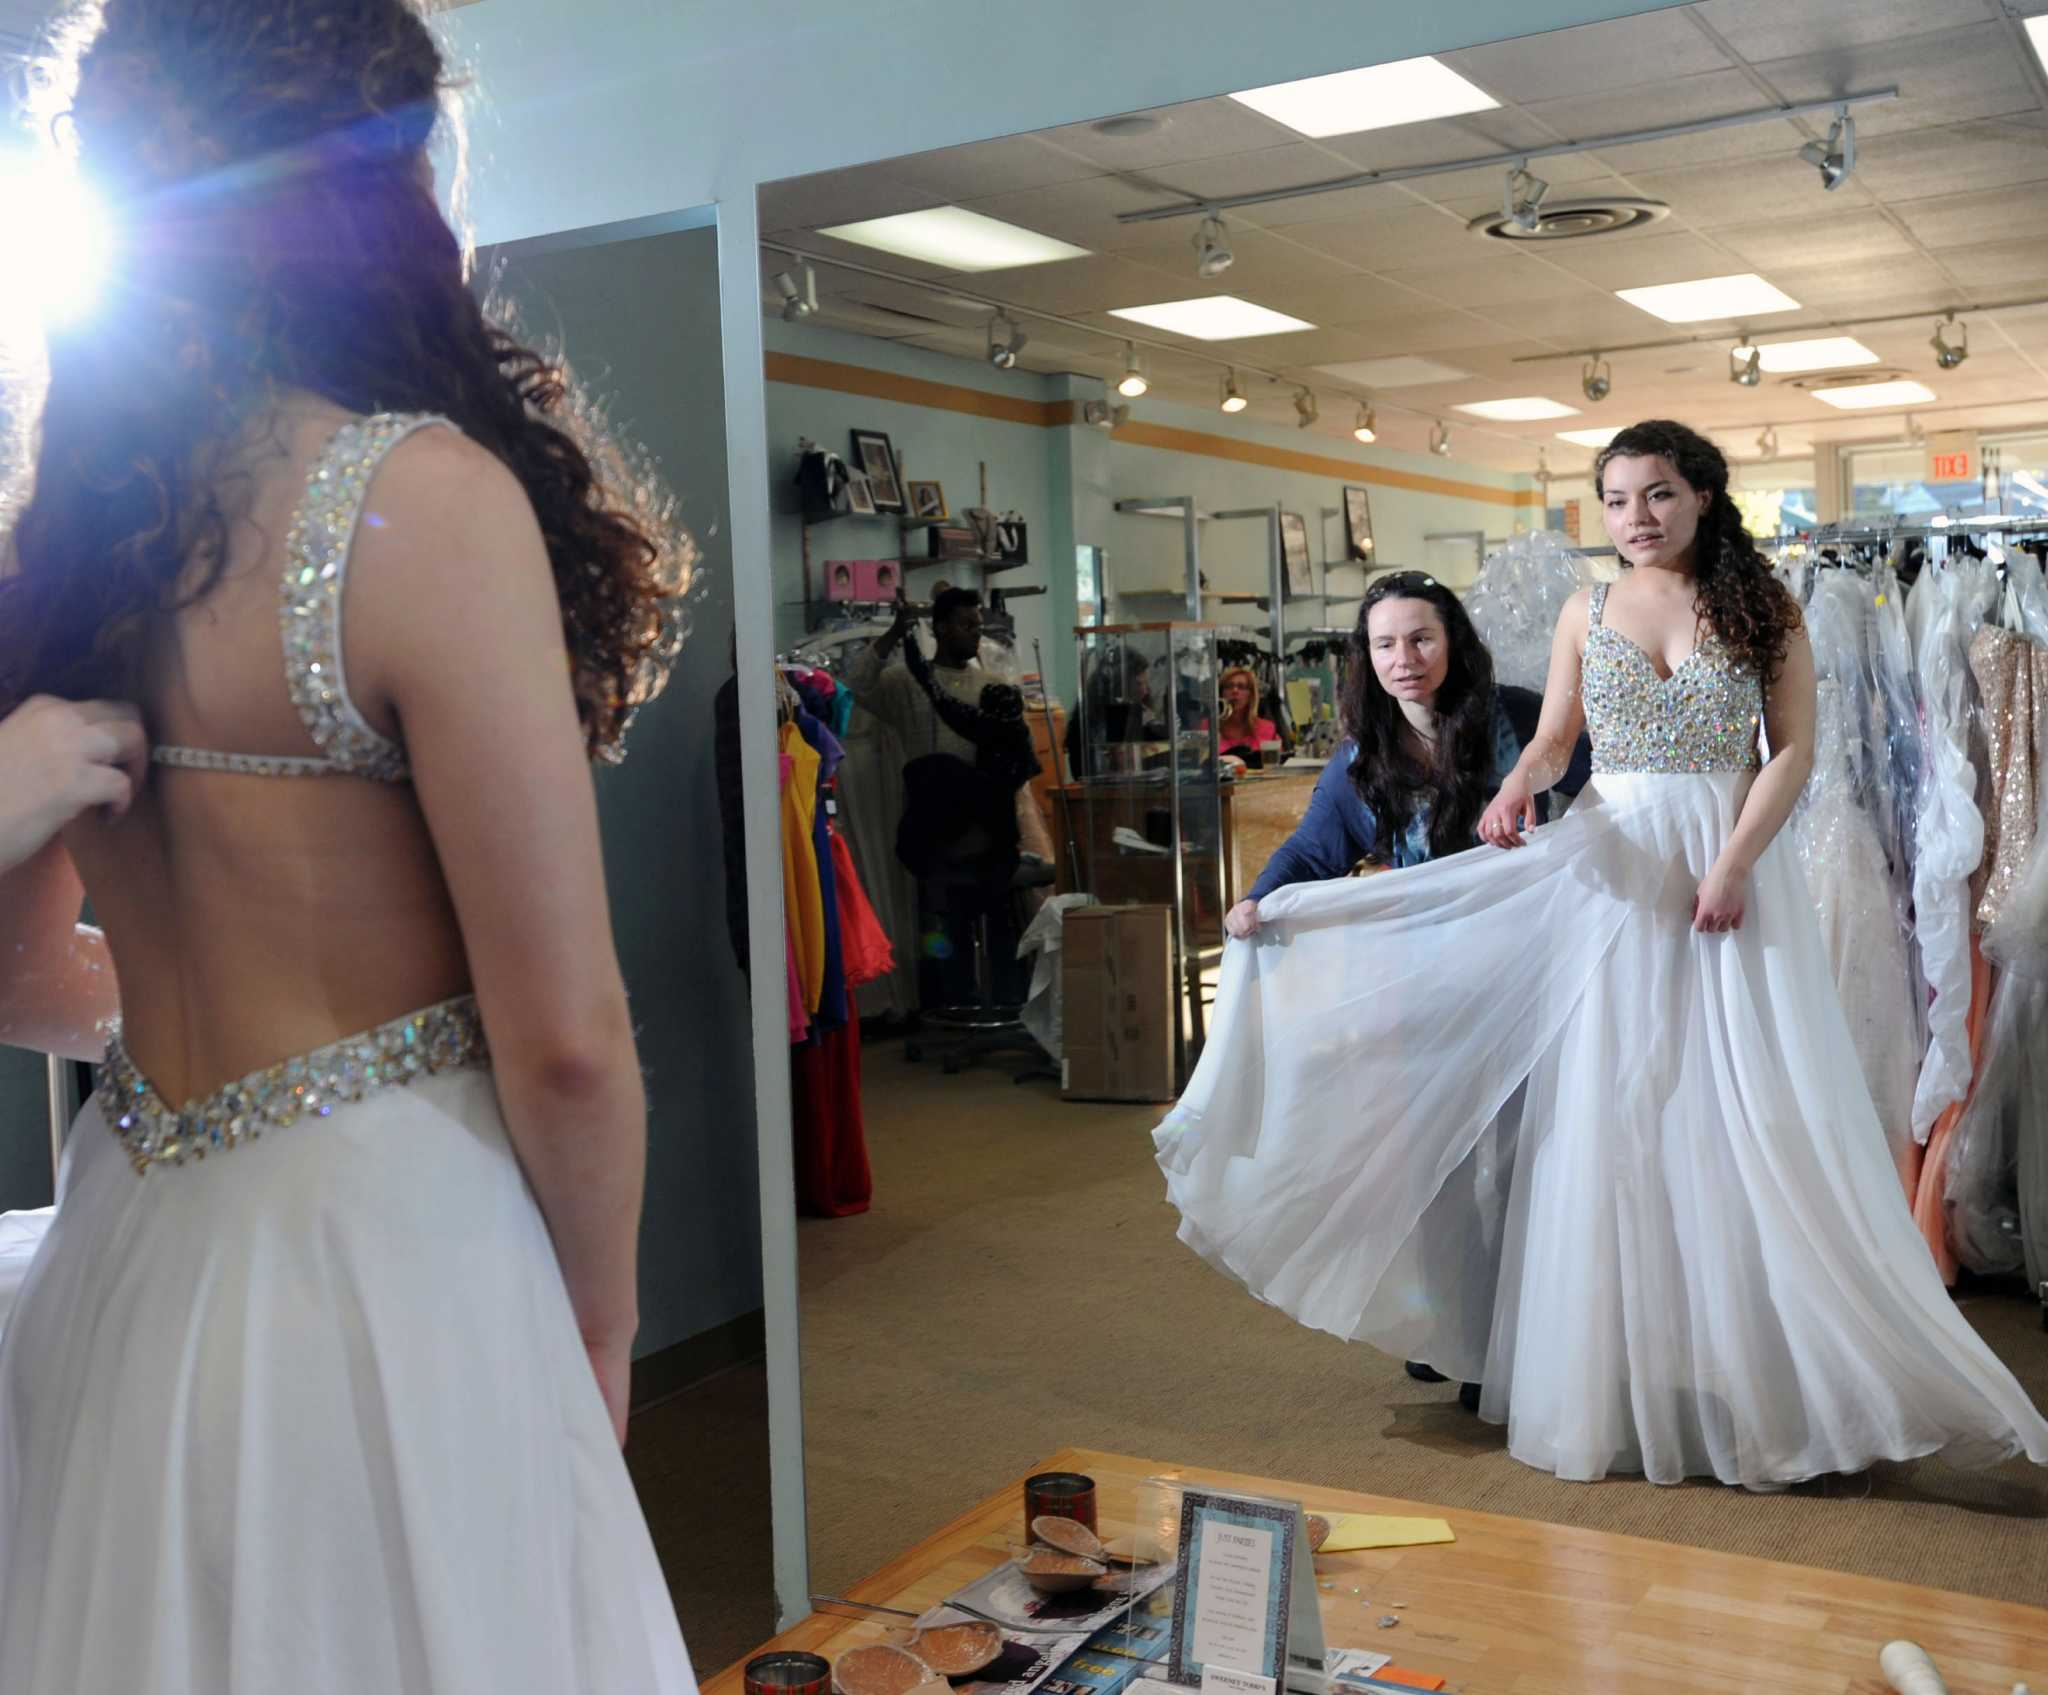 Prom Dresses Danbury Connecticut - Prom Dresses 2018